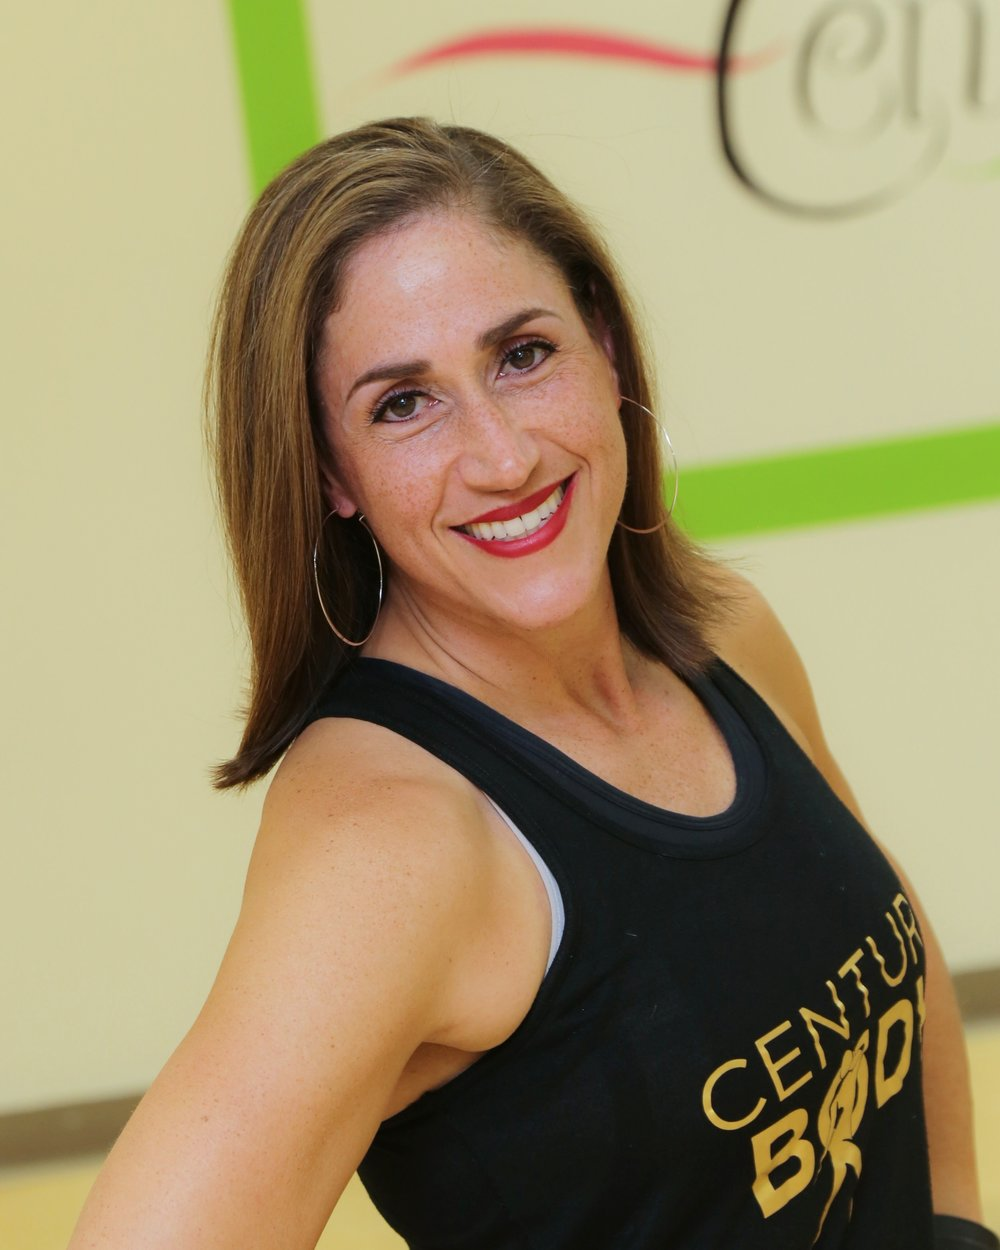 María López Schoenherr   I'd been part of the Century Body family for a year before becoming an instructor. I love, love, LOVE everything about Zumba® Fitness — the music, the language, the energy, the sweating! As an instructor, I love sharing the rhythms, movements, language and joy of my culture with the students. Zumba® Fitness is such a personal experience for me because I grew up listening and dancing to this music. It means so much to me to share my upbringing with others and doing it while staying fit is a bonus. Even though I was left out of the staff tidbits for the 2018 Fall Challenge, I look forward to continue spreading the joy of Zumba® Fitness and maybe even teaching you some Spanish! Come and dance with me!